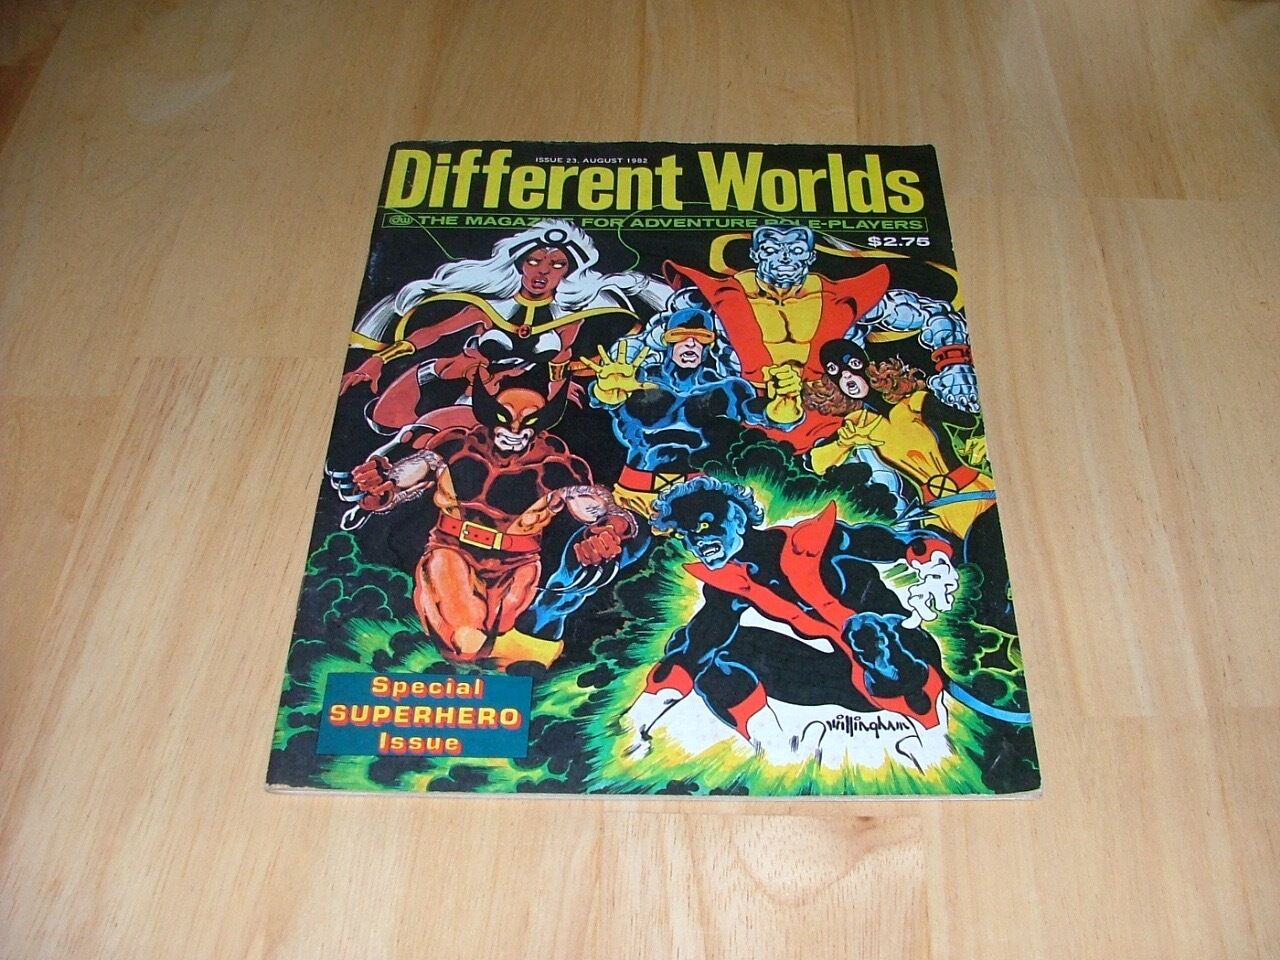 Different Worlds Magazine RPG CHAOSIUM Issue 23 August 1982  Extremely Rare